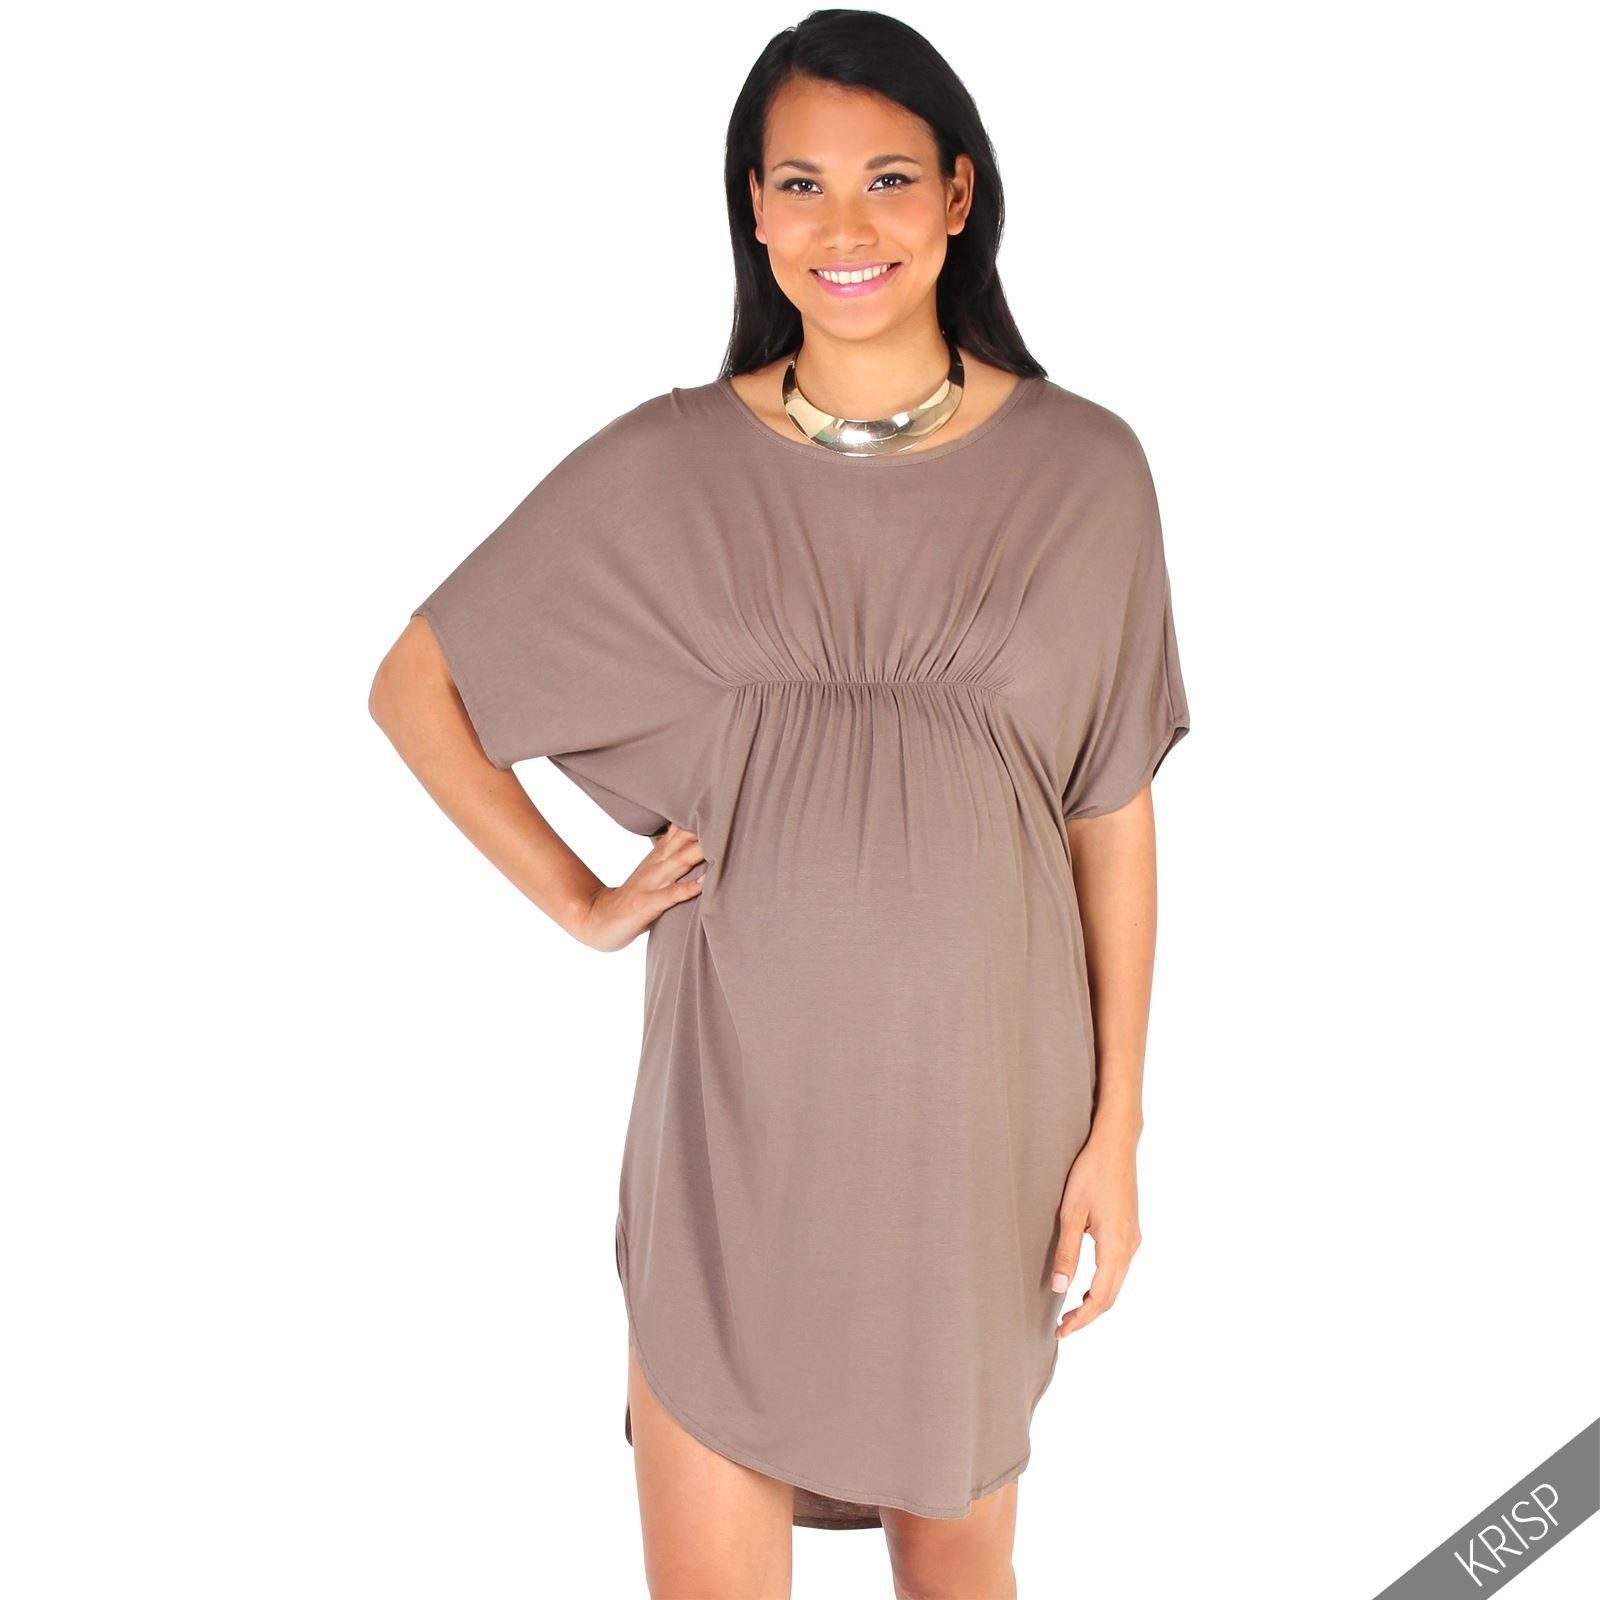 Maternity womens empire line short sleeve top long loose t Women s long sleeve shirt dress